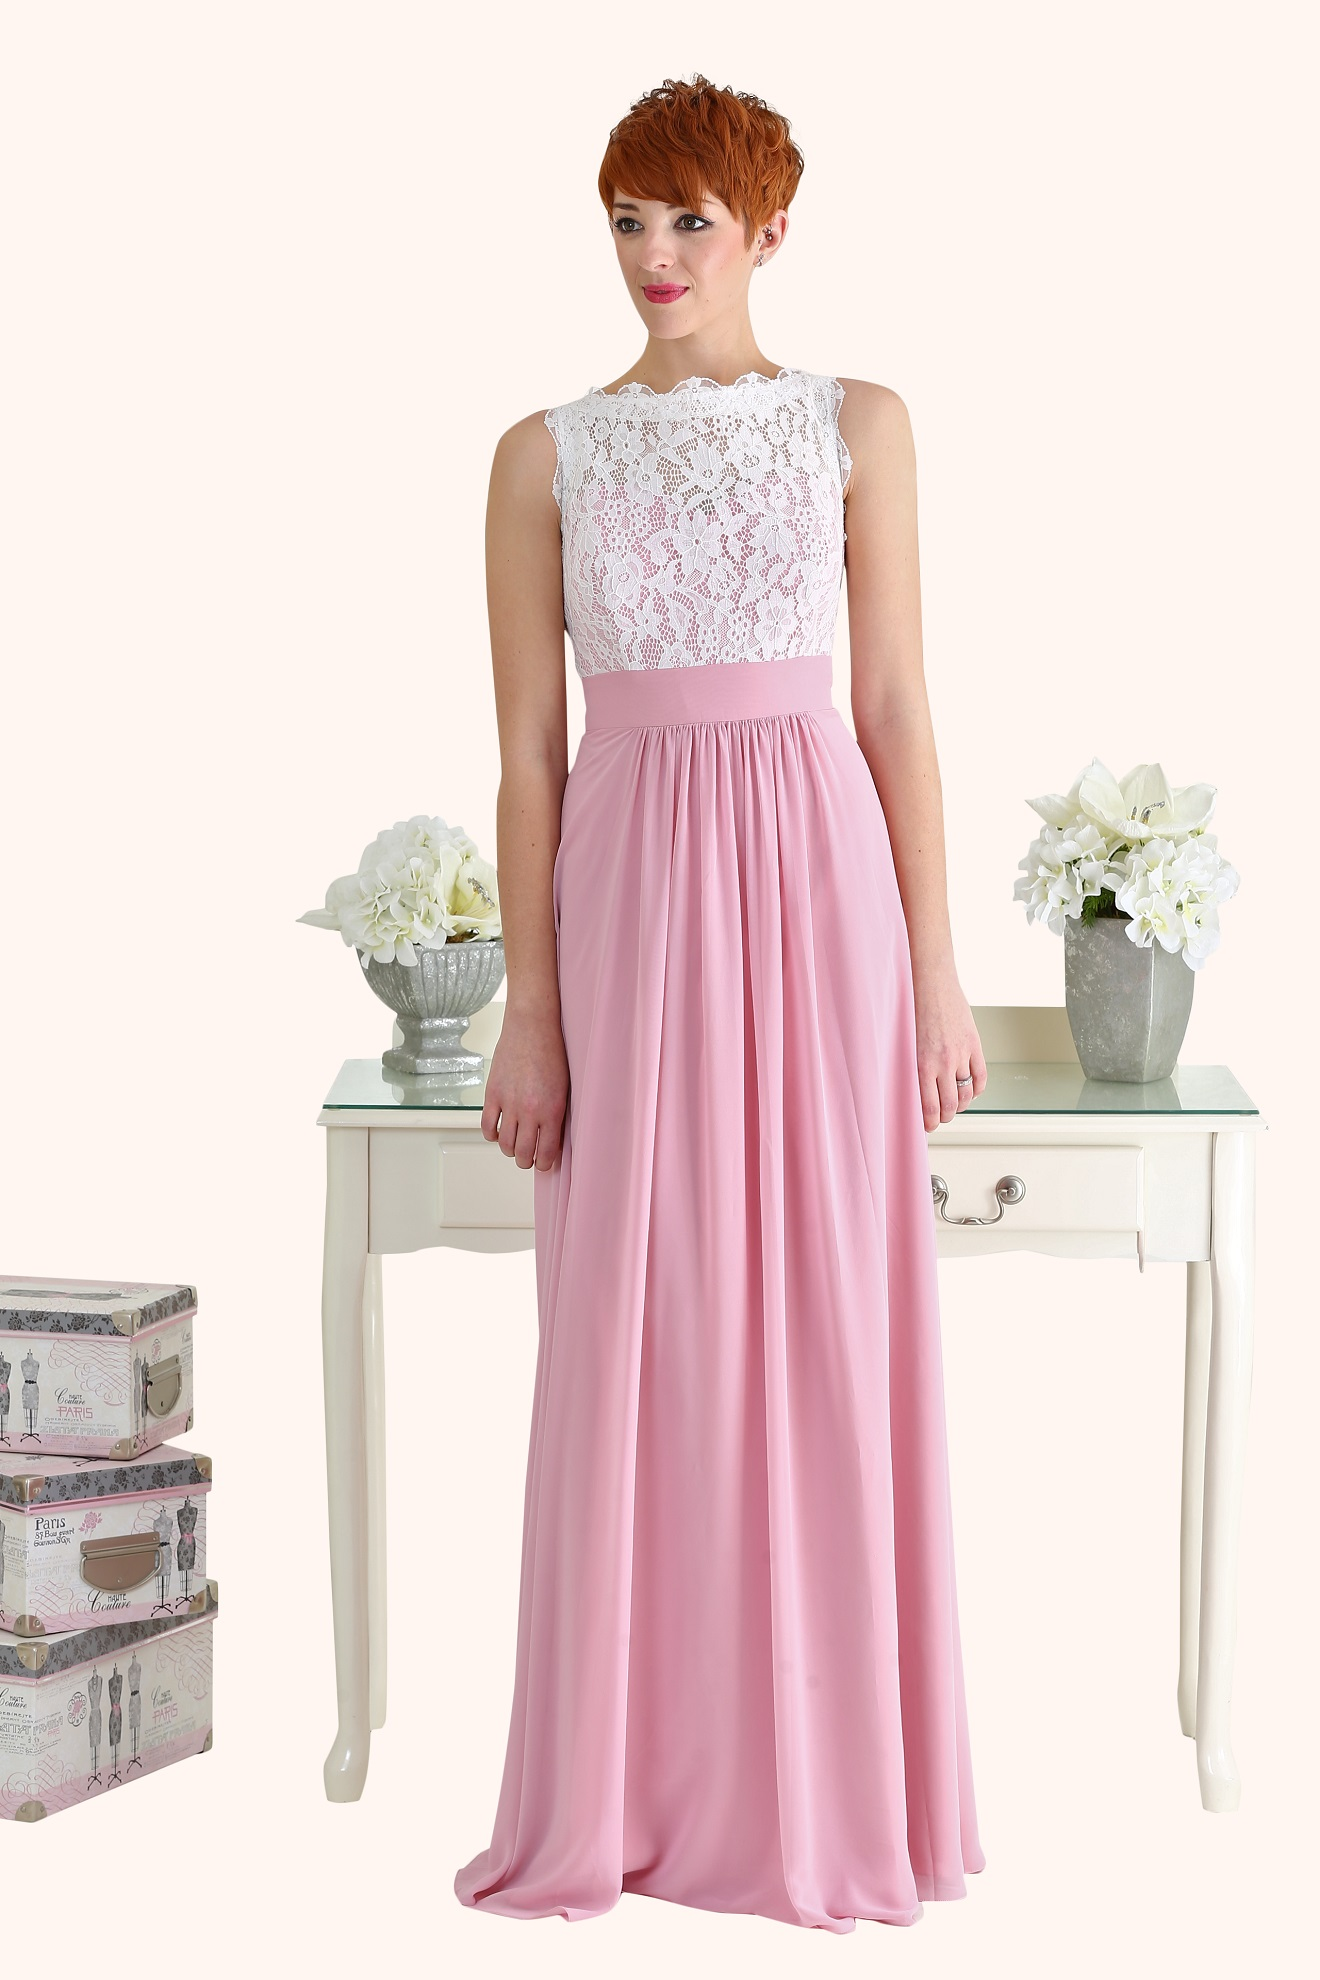 Lucy Lace Illusion Neckline Bodice and Long Length Pink Chiffon A ...